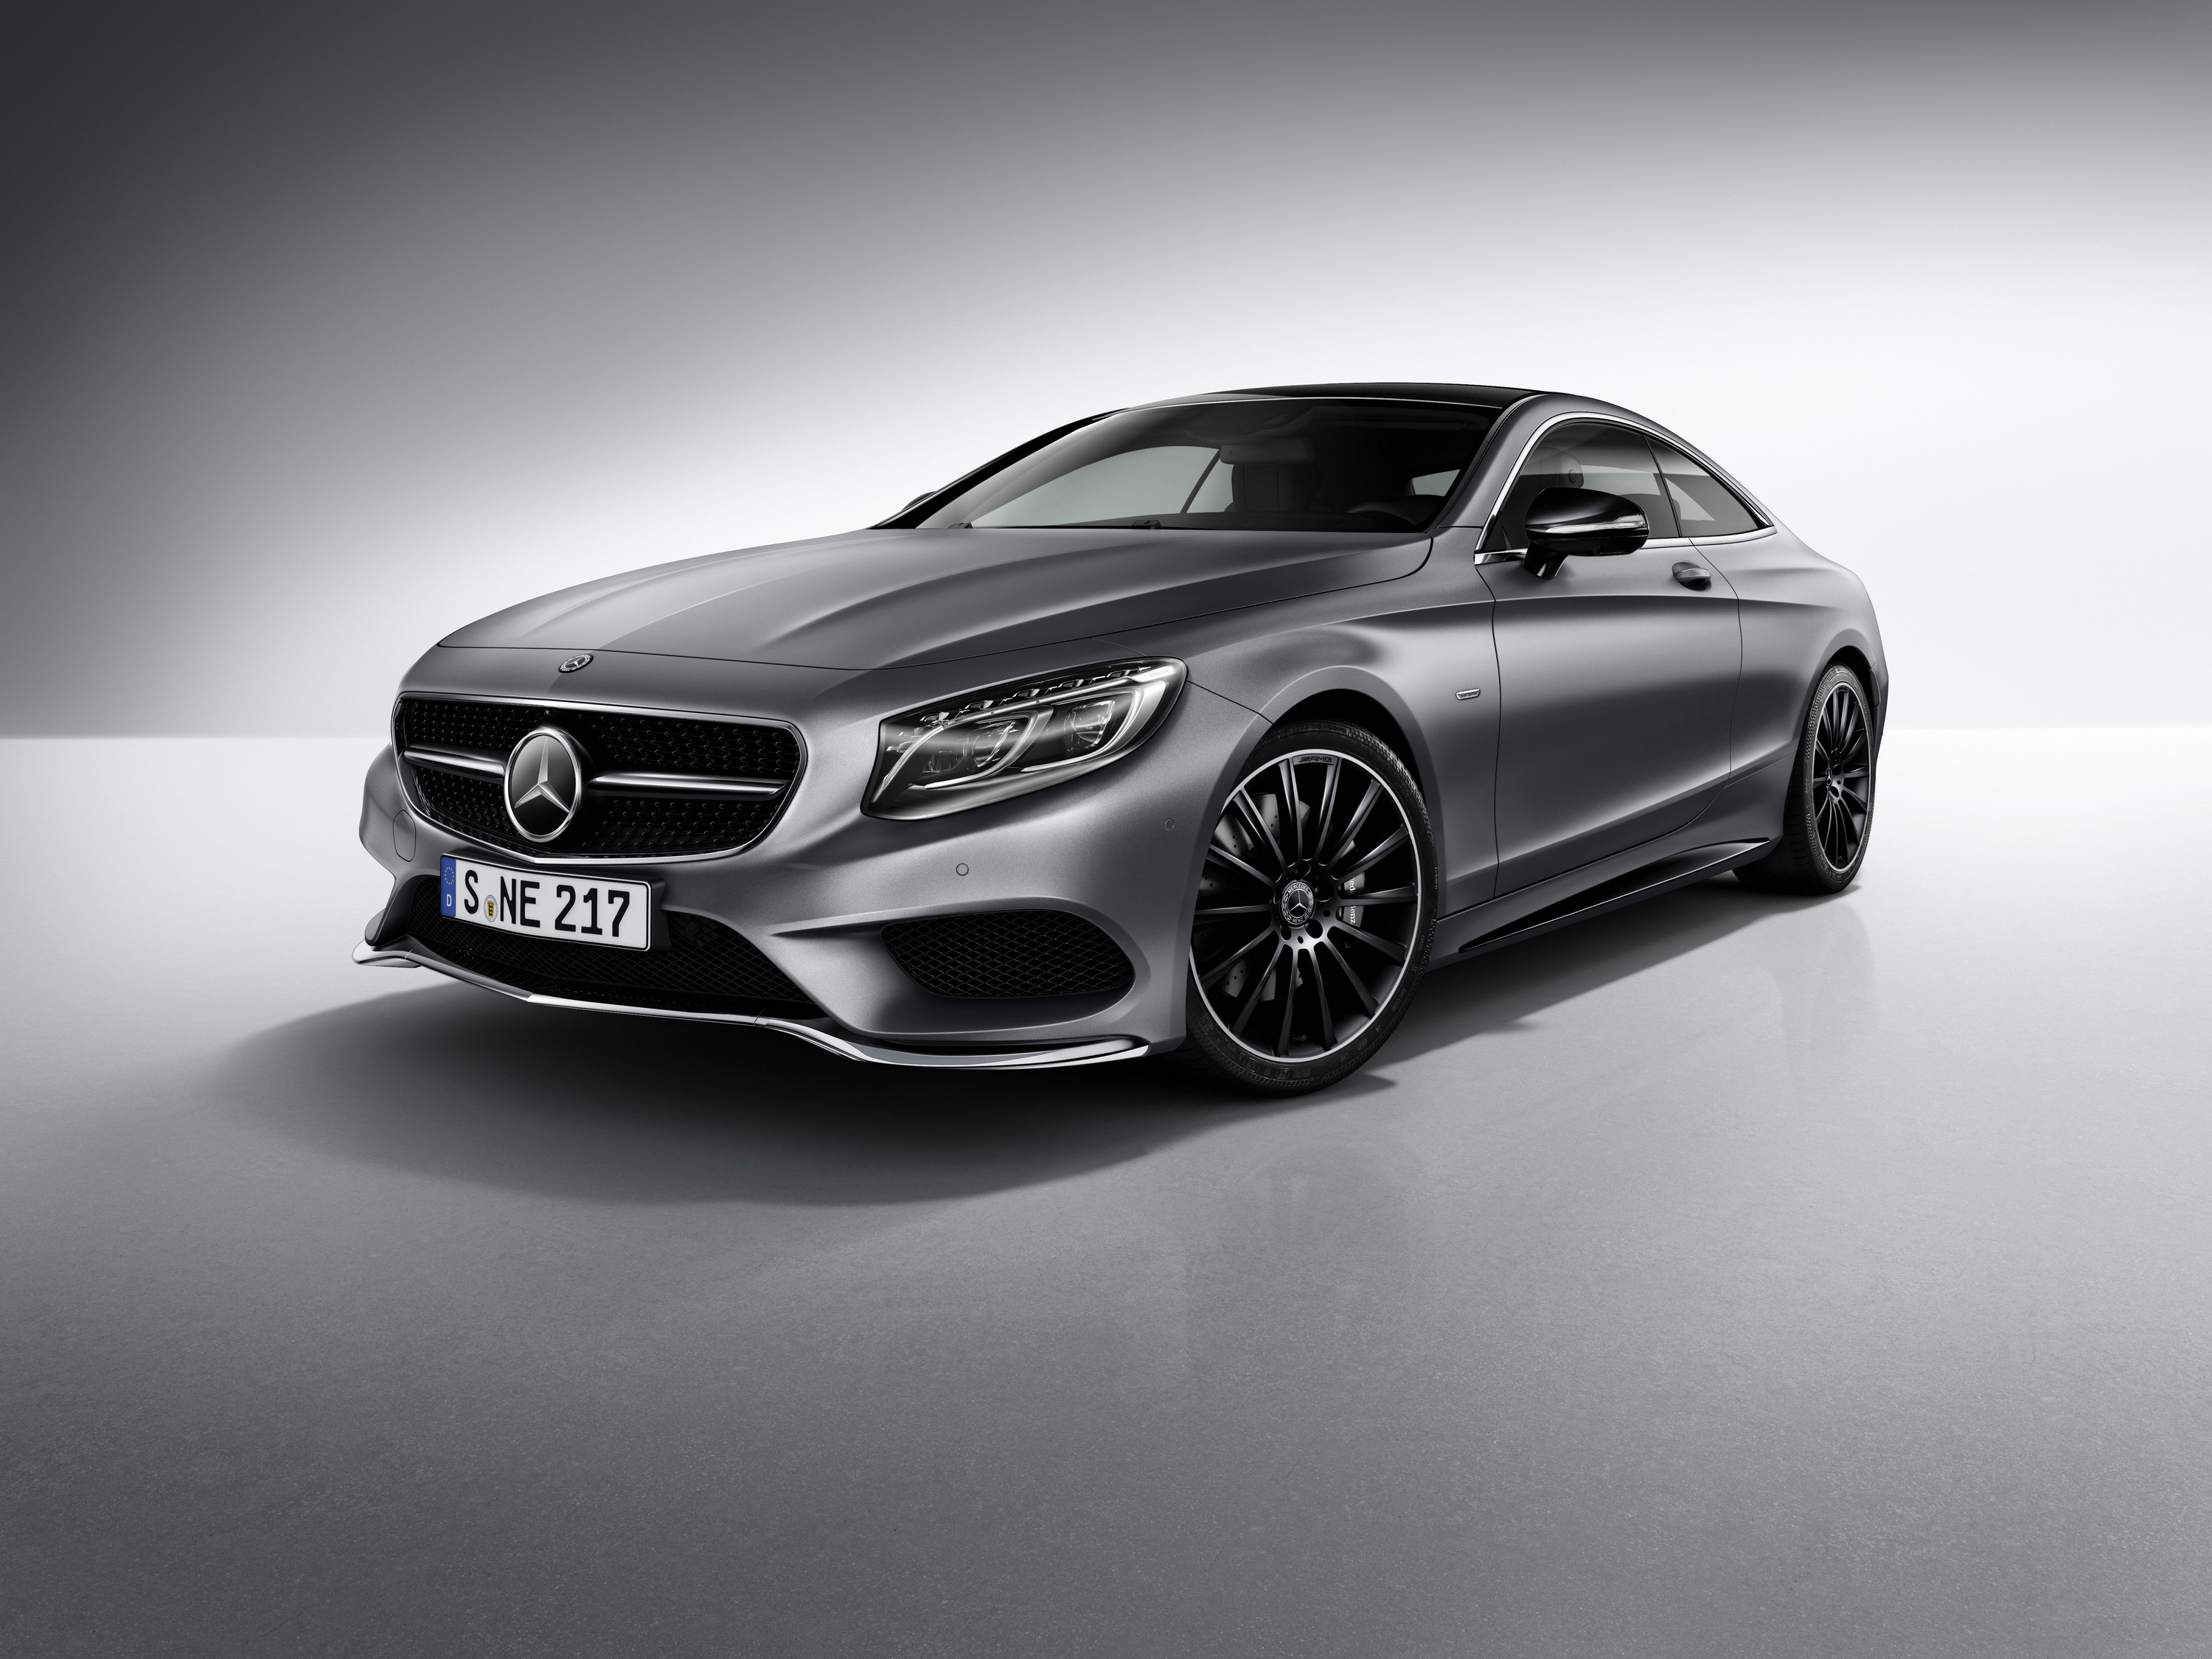 Magnificent 2017 Mercedes Benz S Class Coupe Night Edition Top Speed Wiring Cloud Philuggs Outletorg